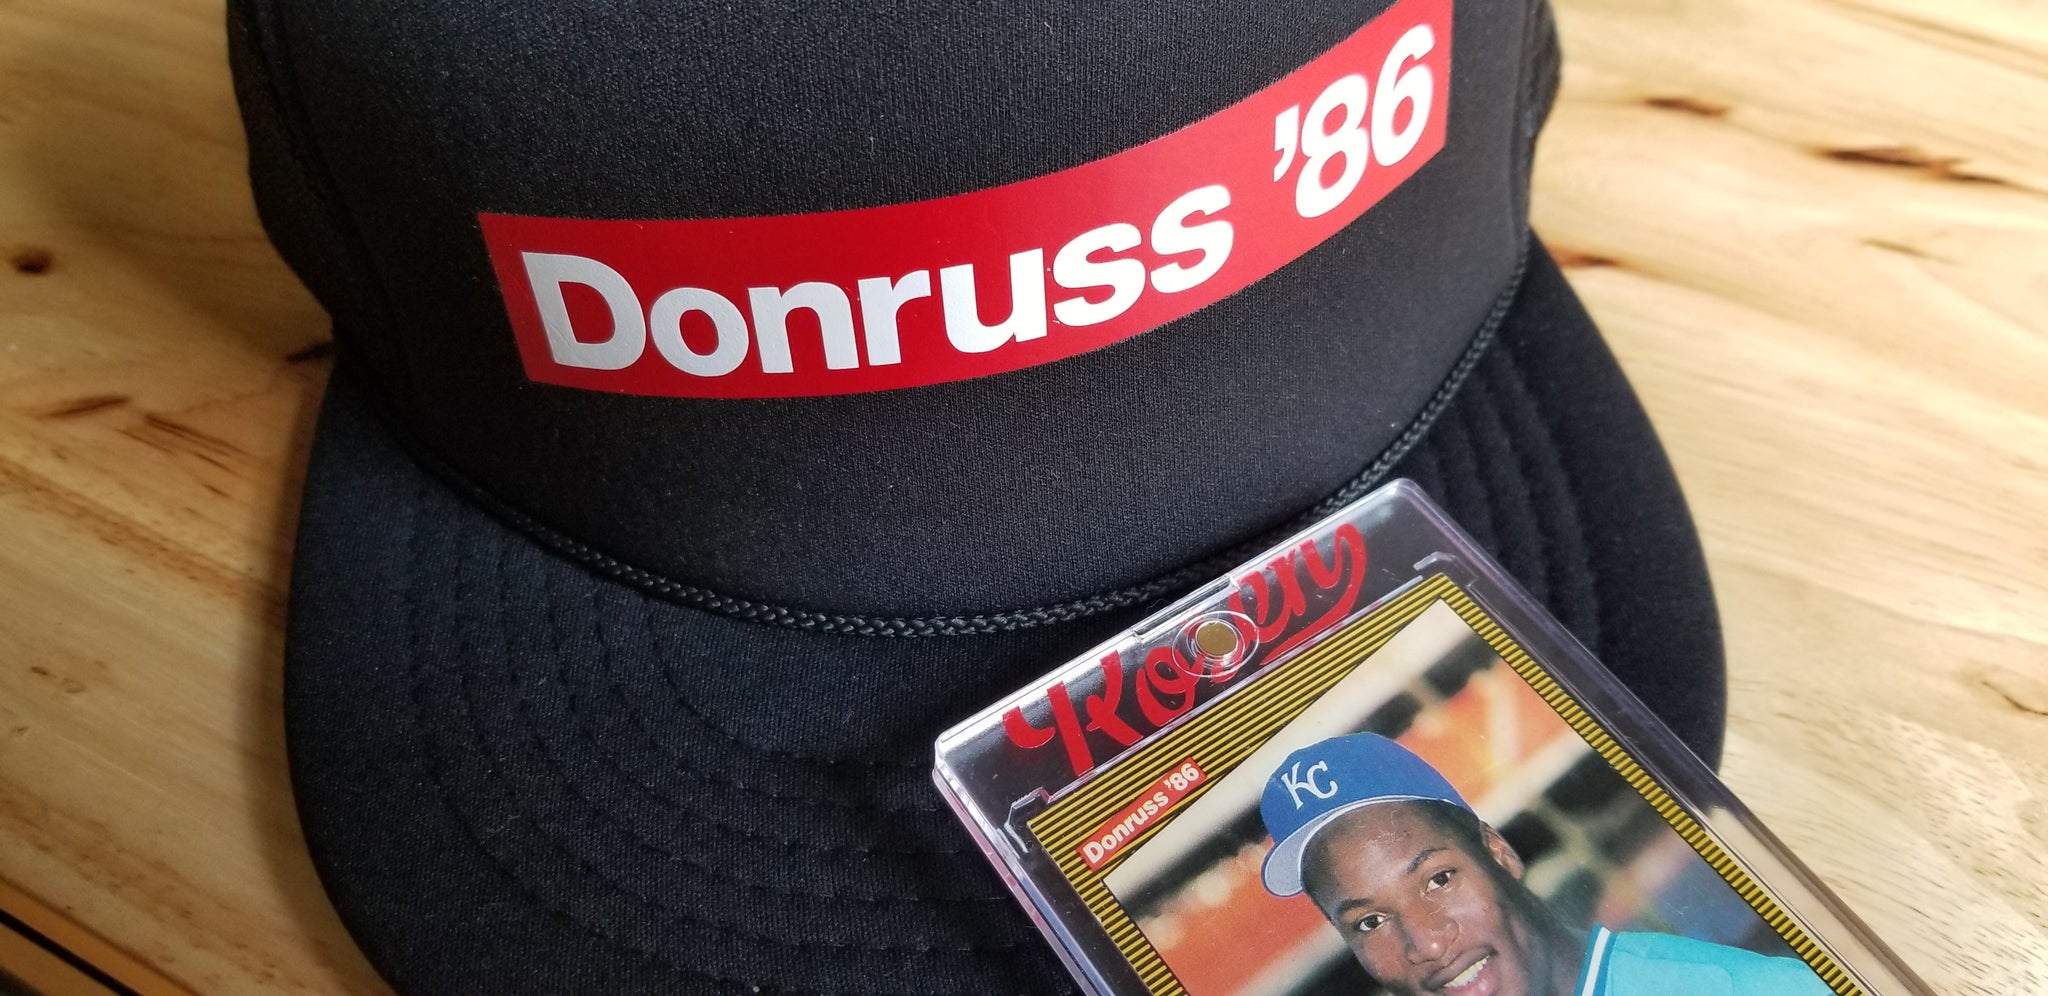 1986 Donruss trucker cap by baseball card artist Matthew Rosen